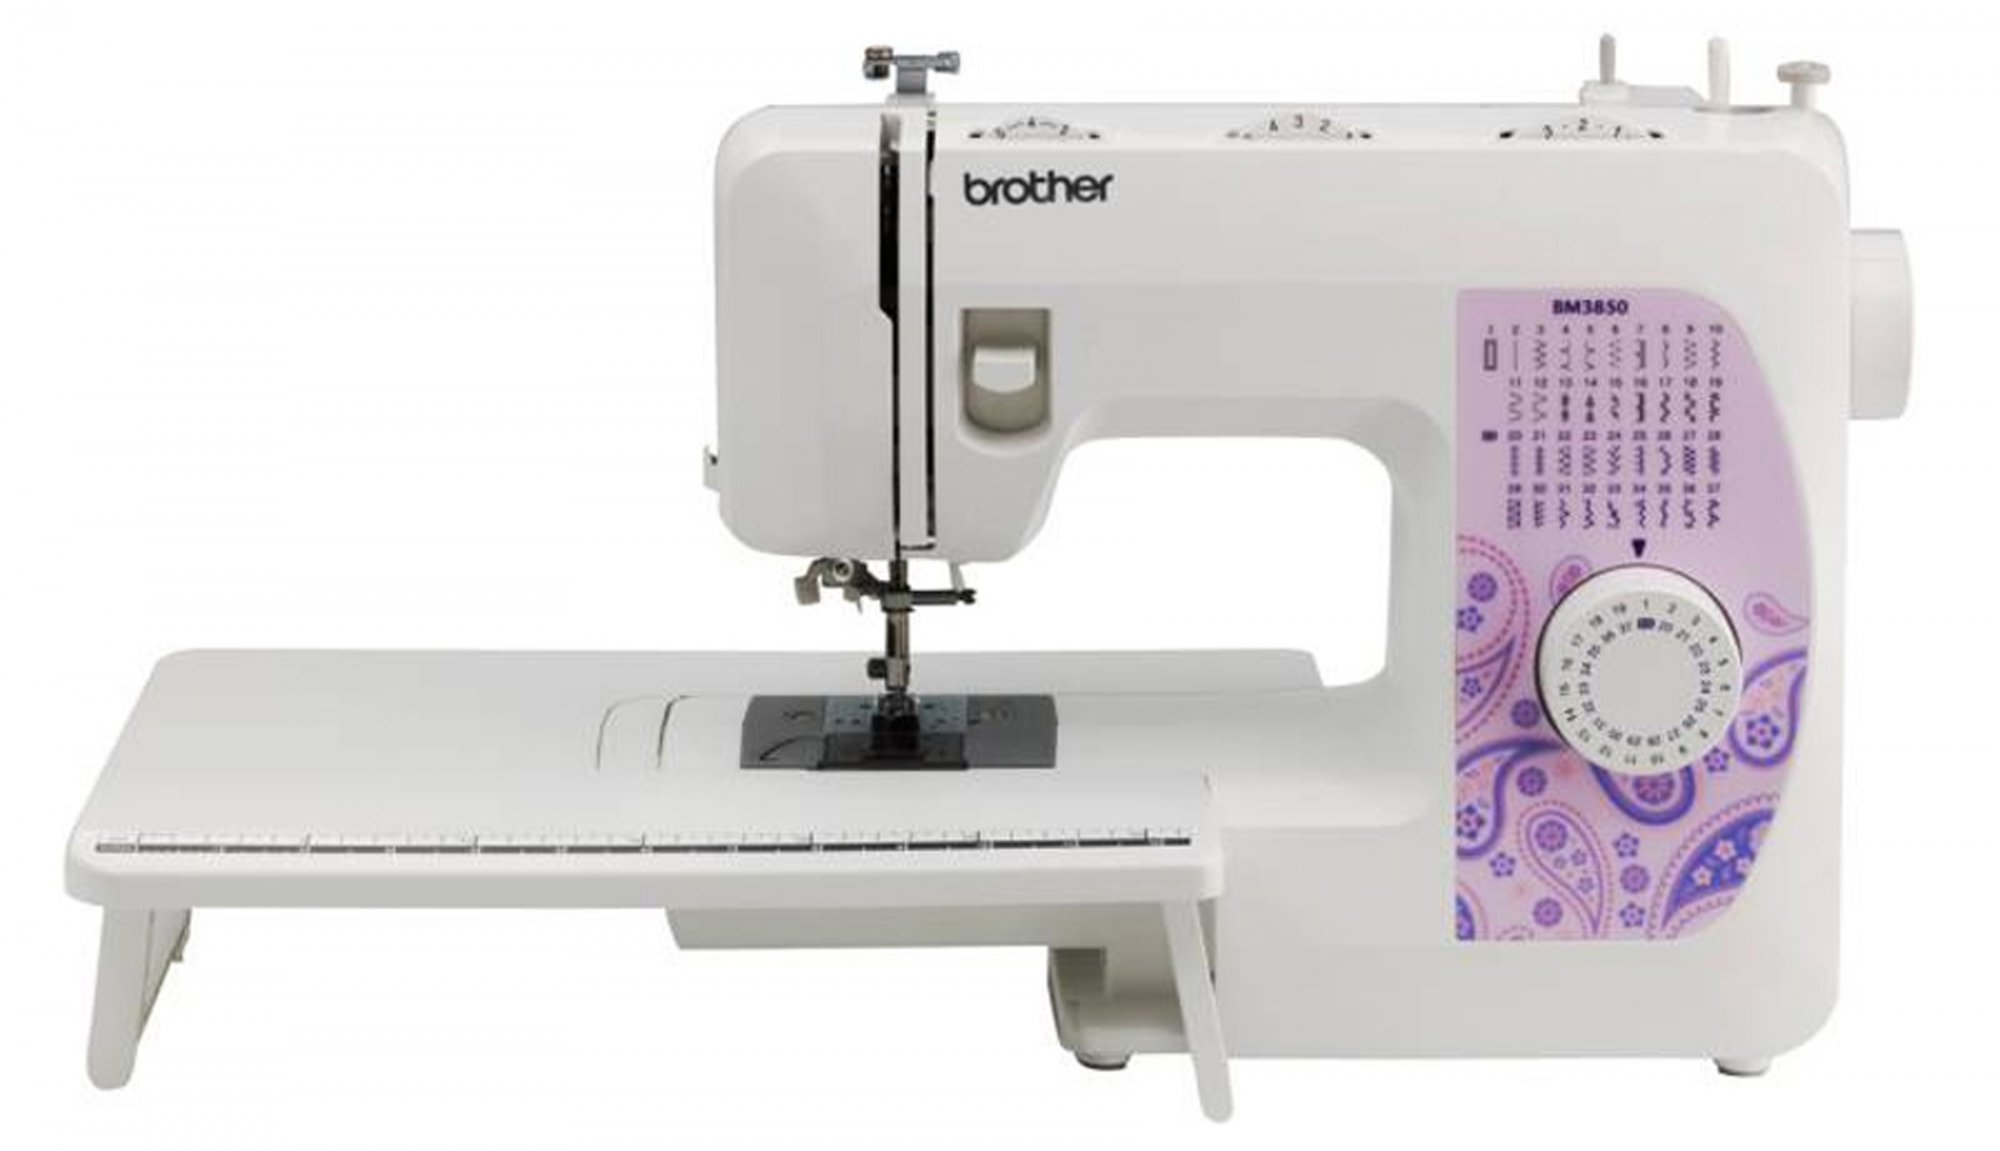 Brother BM3850 Sewing Machine - No Classes